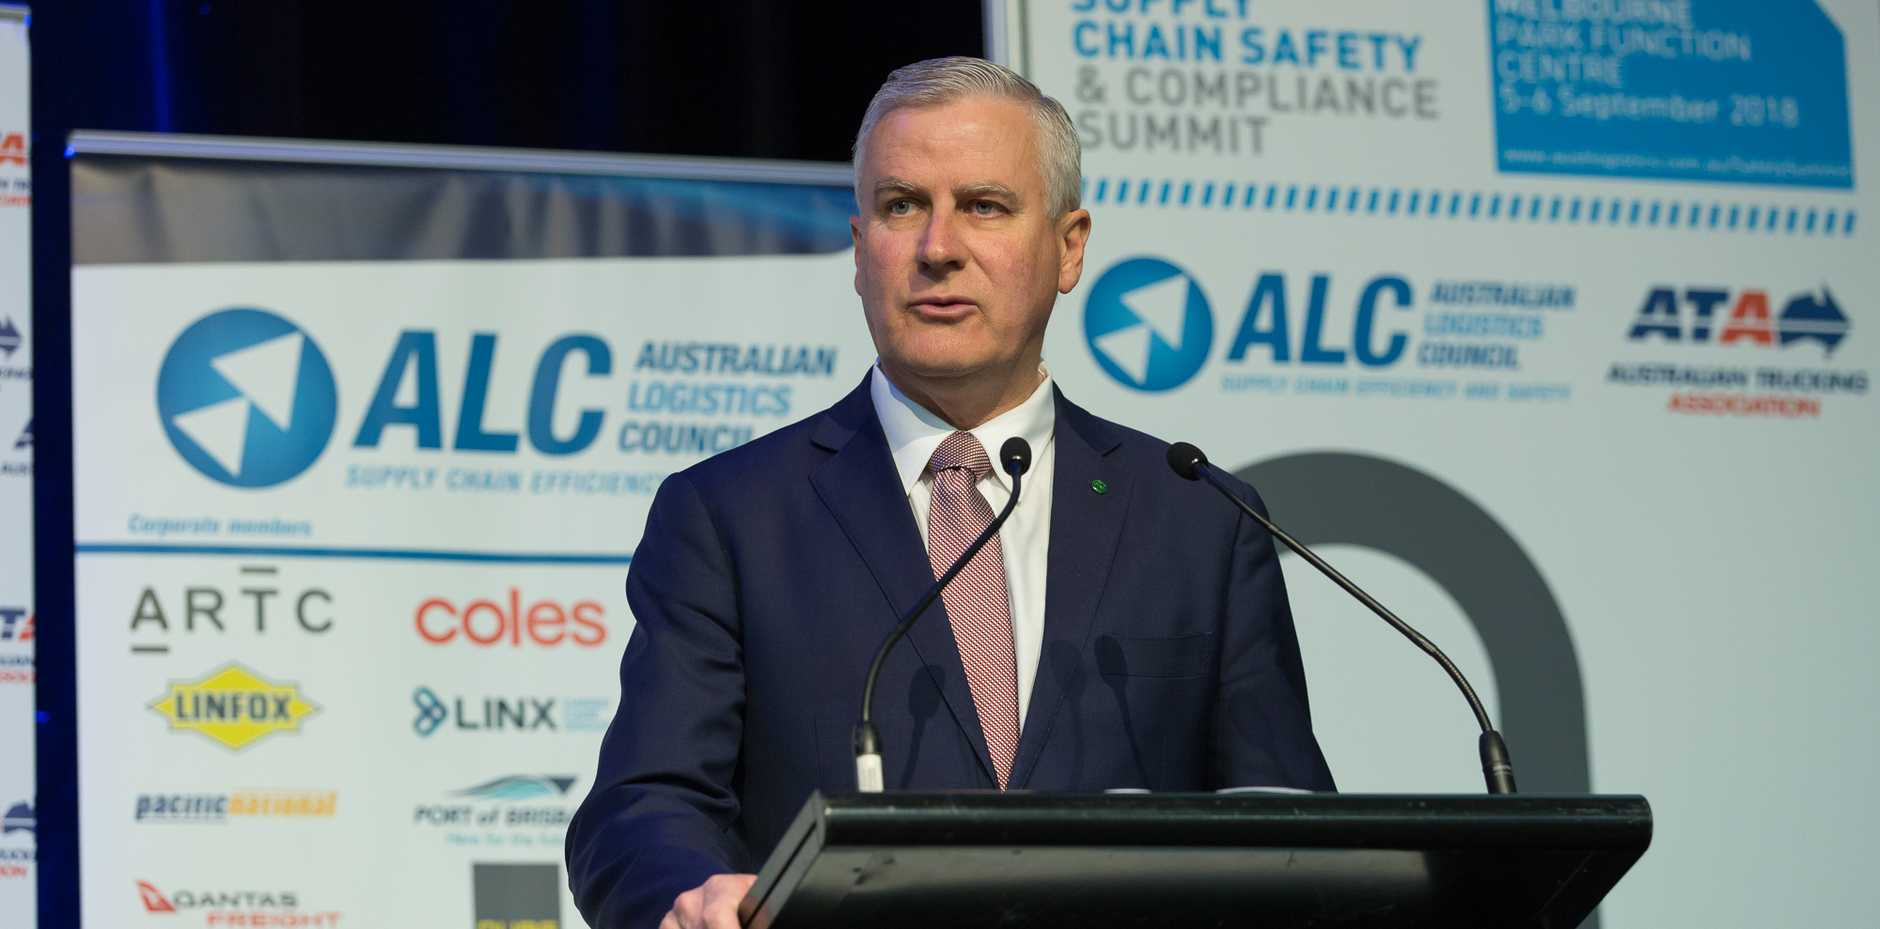 Deputy Prime Minister Michael McCormack at the safety summit